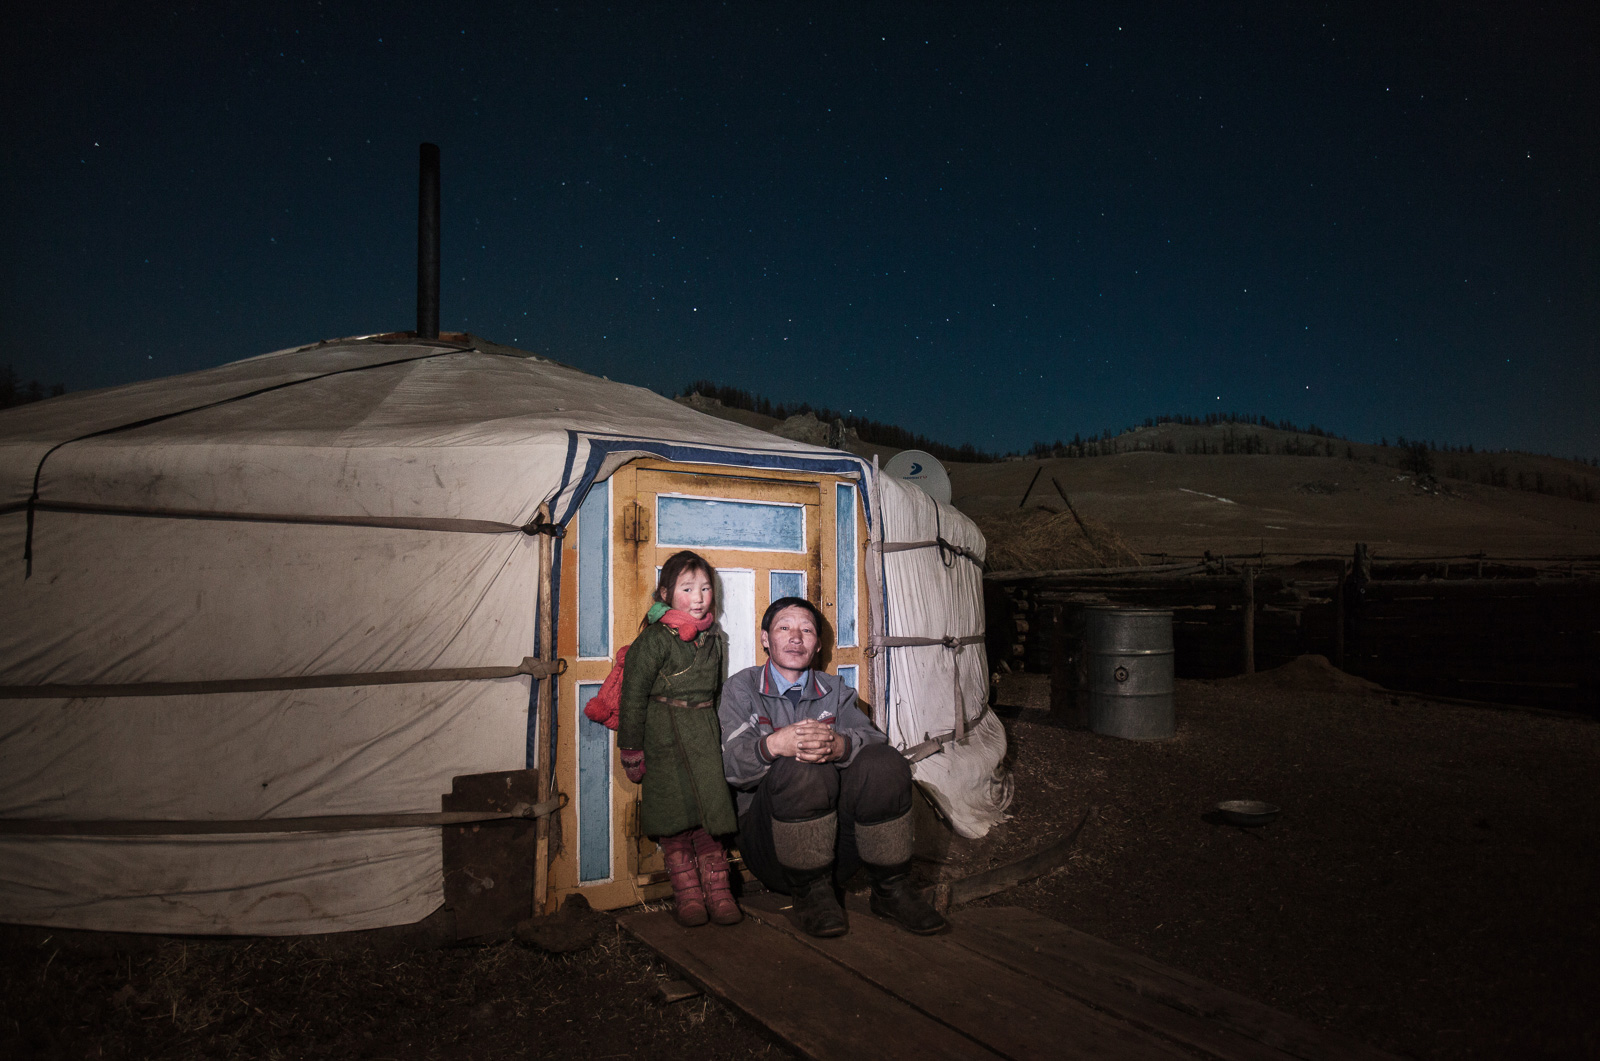 Father and daughter posing for a cold night portrait at their ger's doorstep. Although life in the steppe is rude, there is a great complicity between the members of the family and a lot of humour.